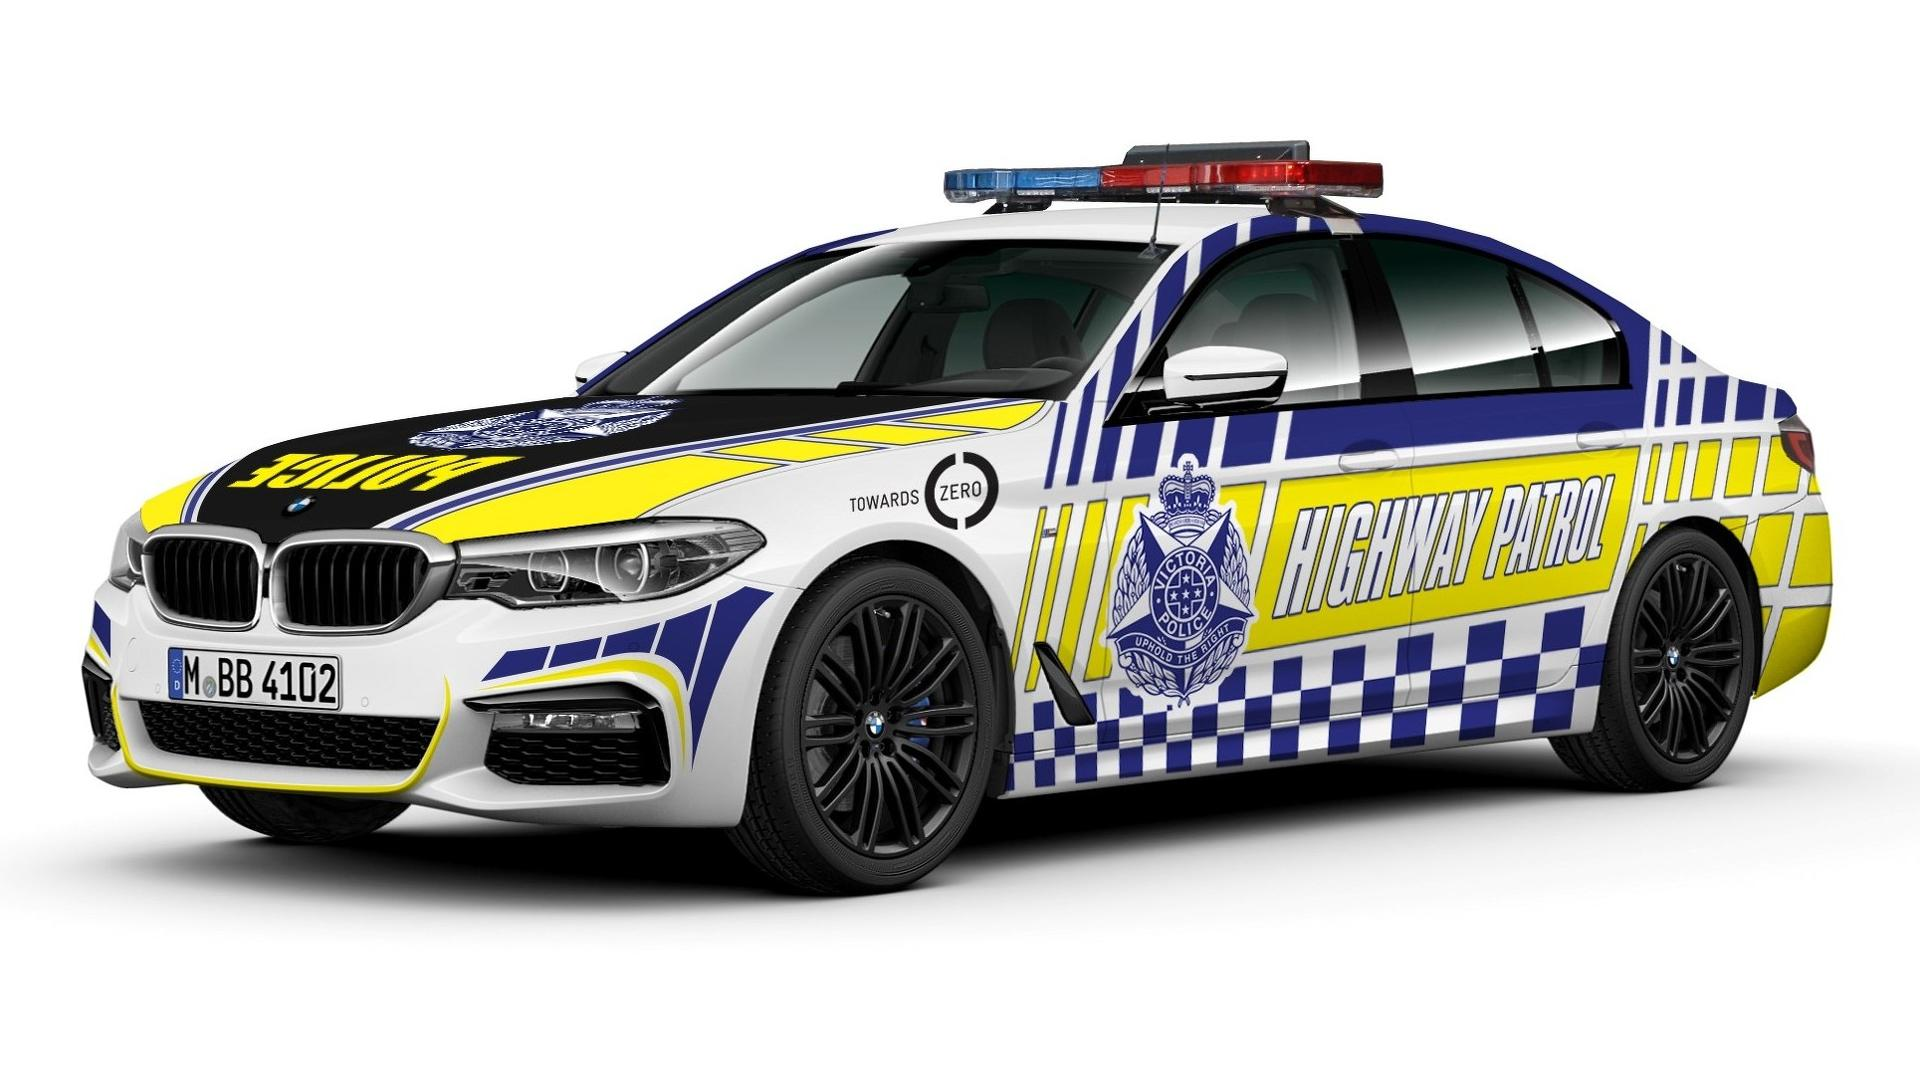 Australian Police Force To Get Bmw 530d Highway Patrol Cars